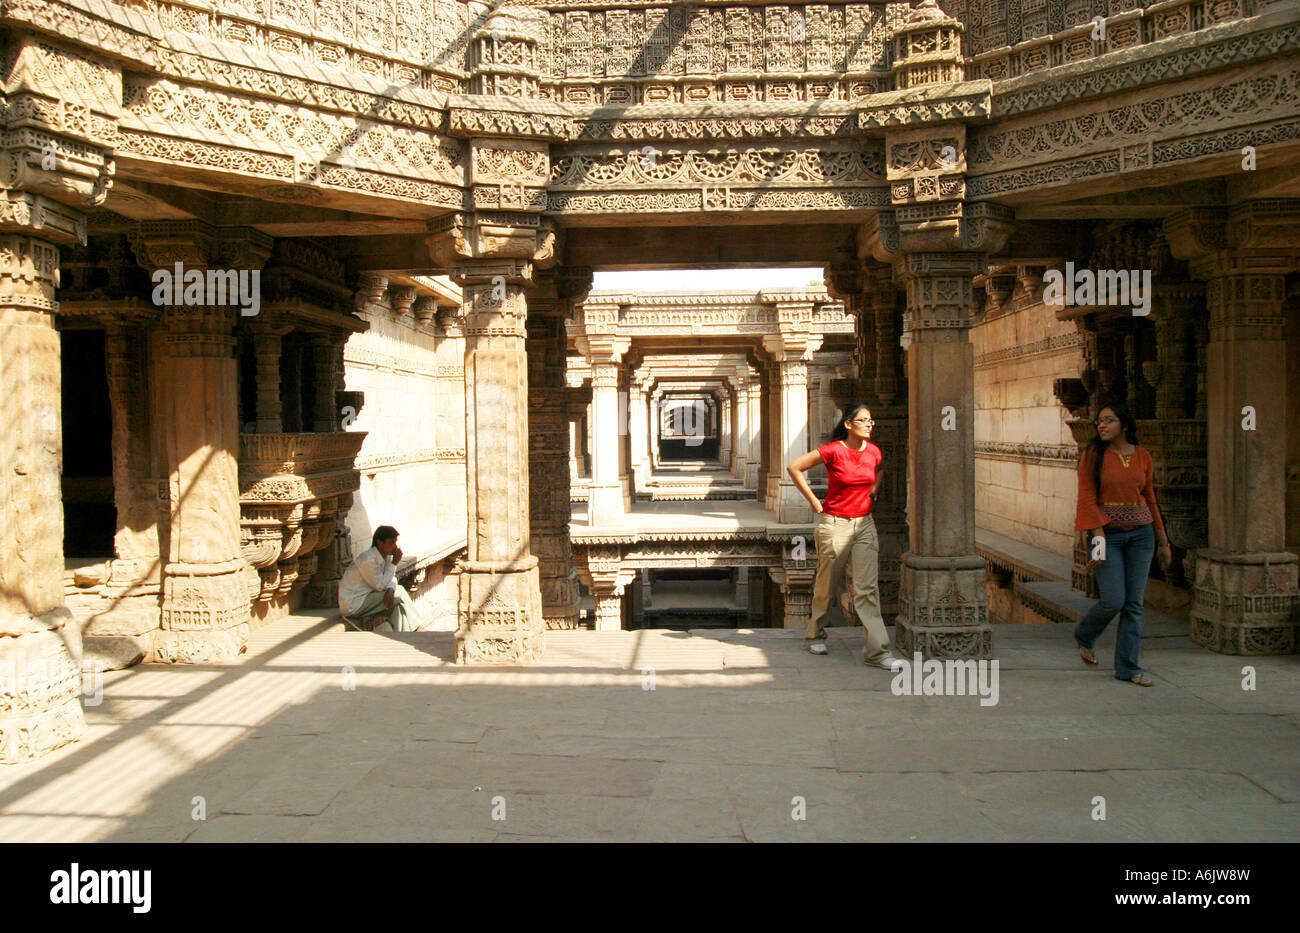 visitors to the exquisitely carved historic Adalaj Step-well near Ahmedabad,Gujarat,India - Stock Image